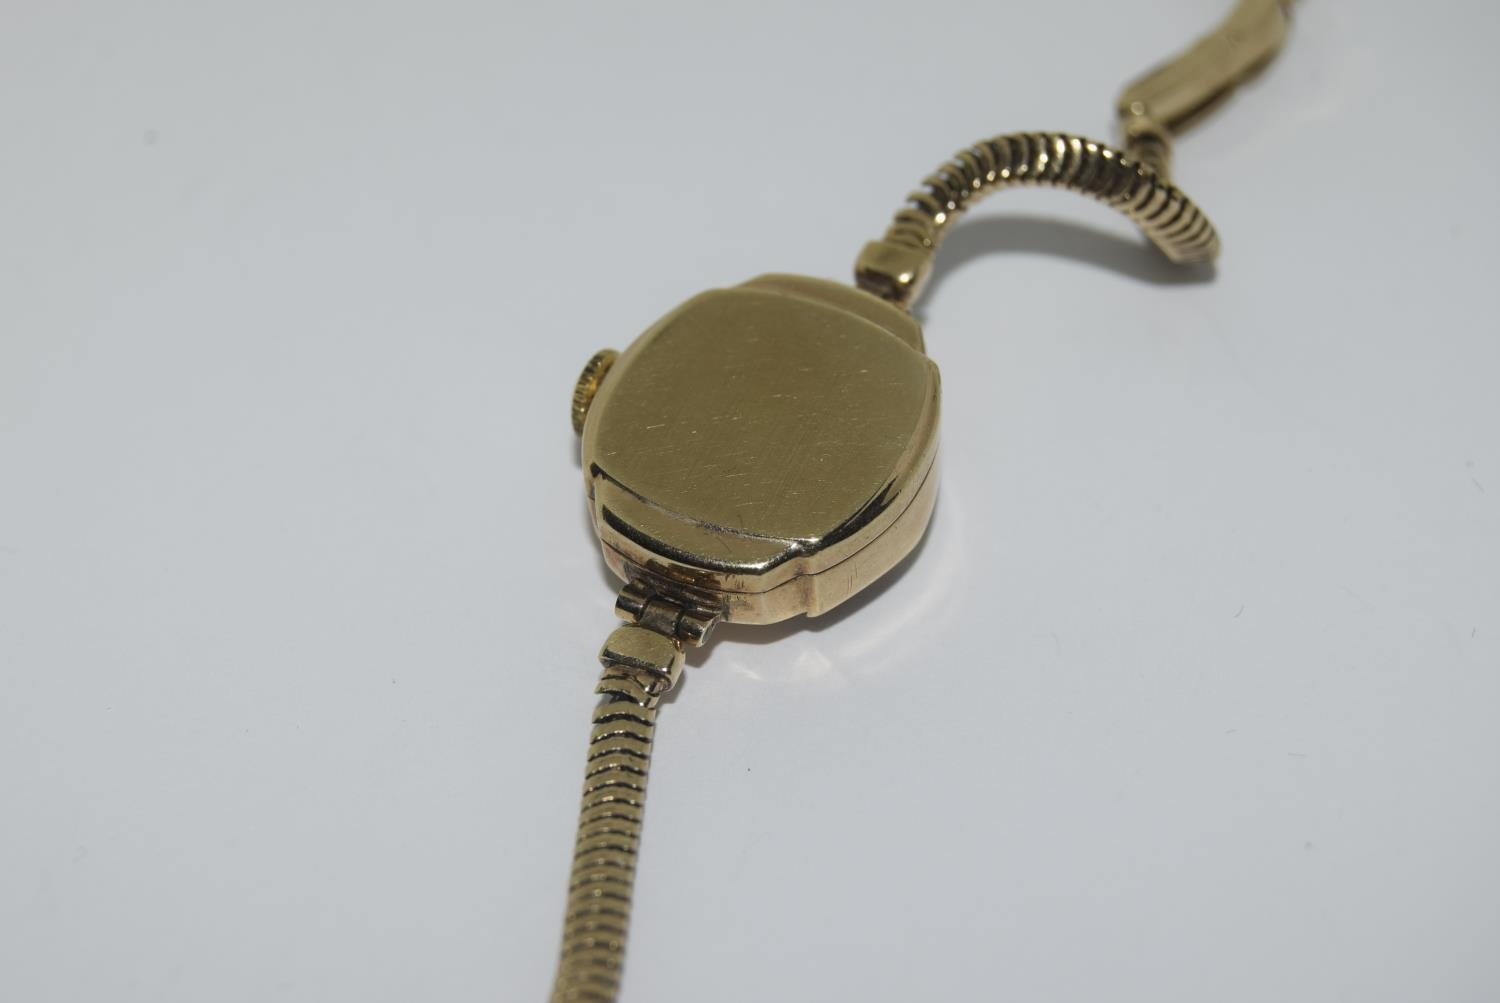 9ct gold ladies watch and strap together an agate watch fob - Image 9 of 9